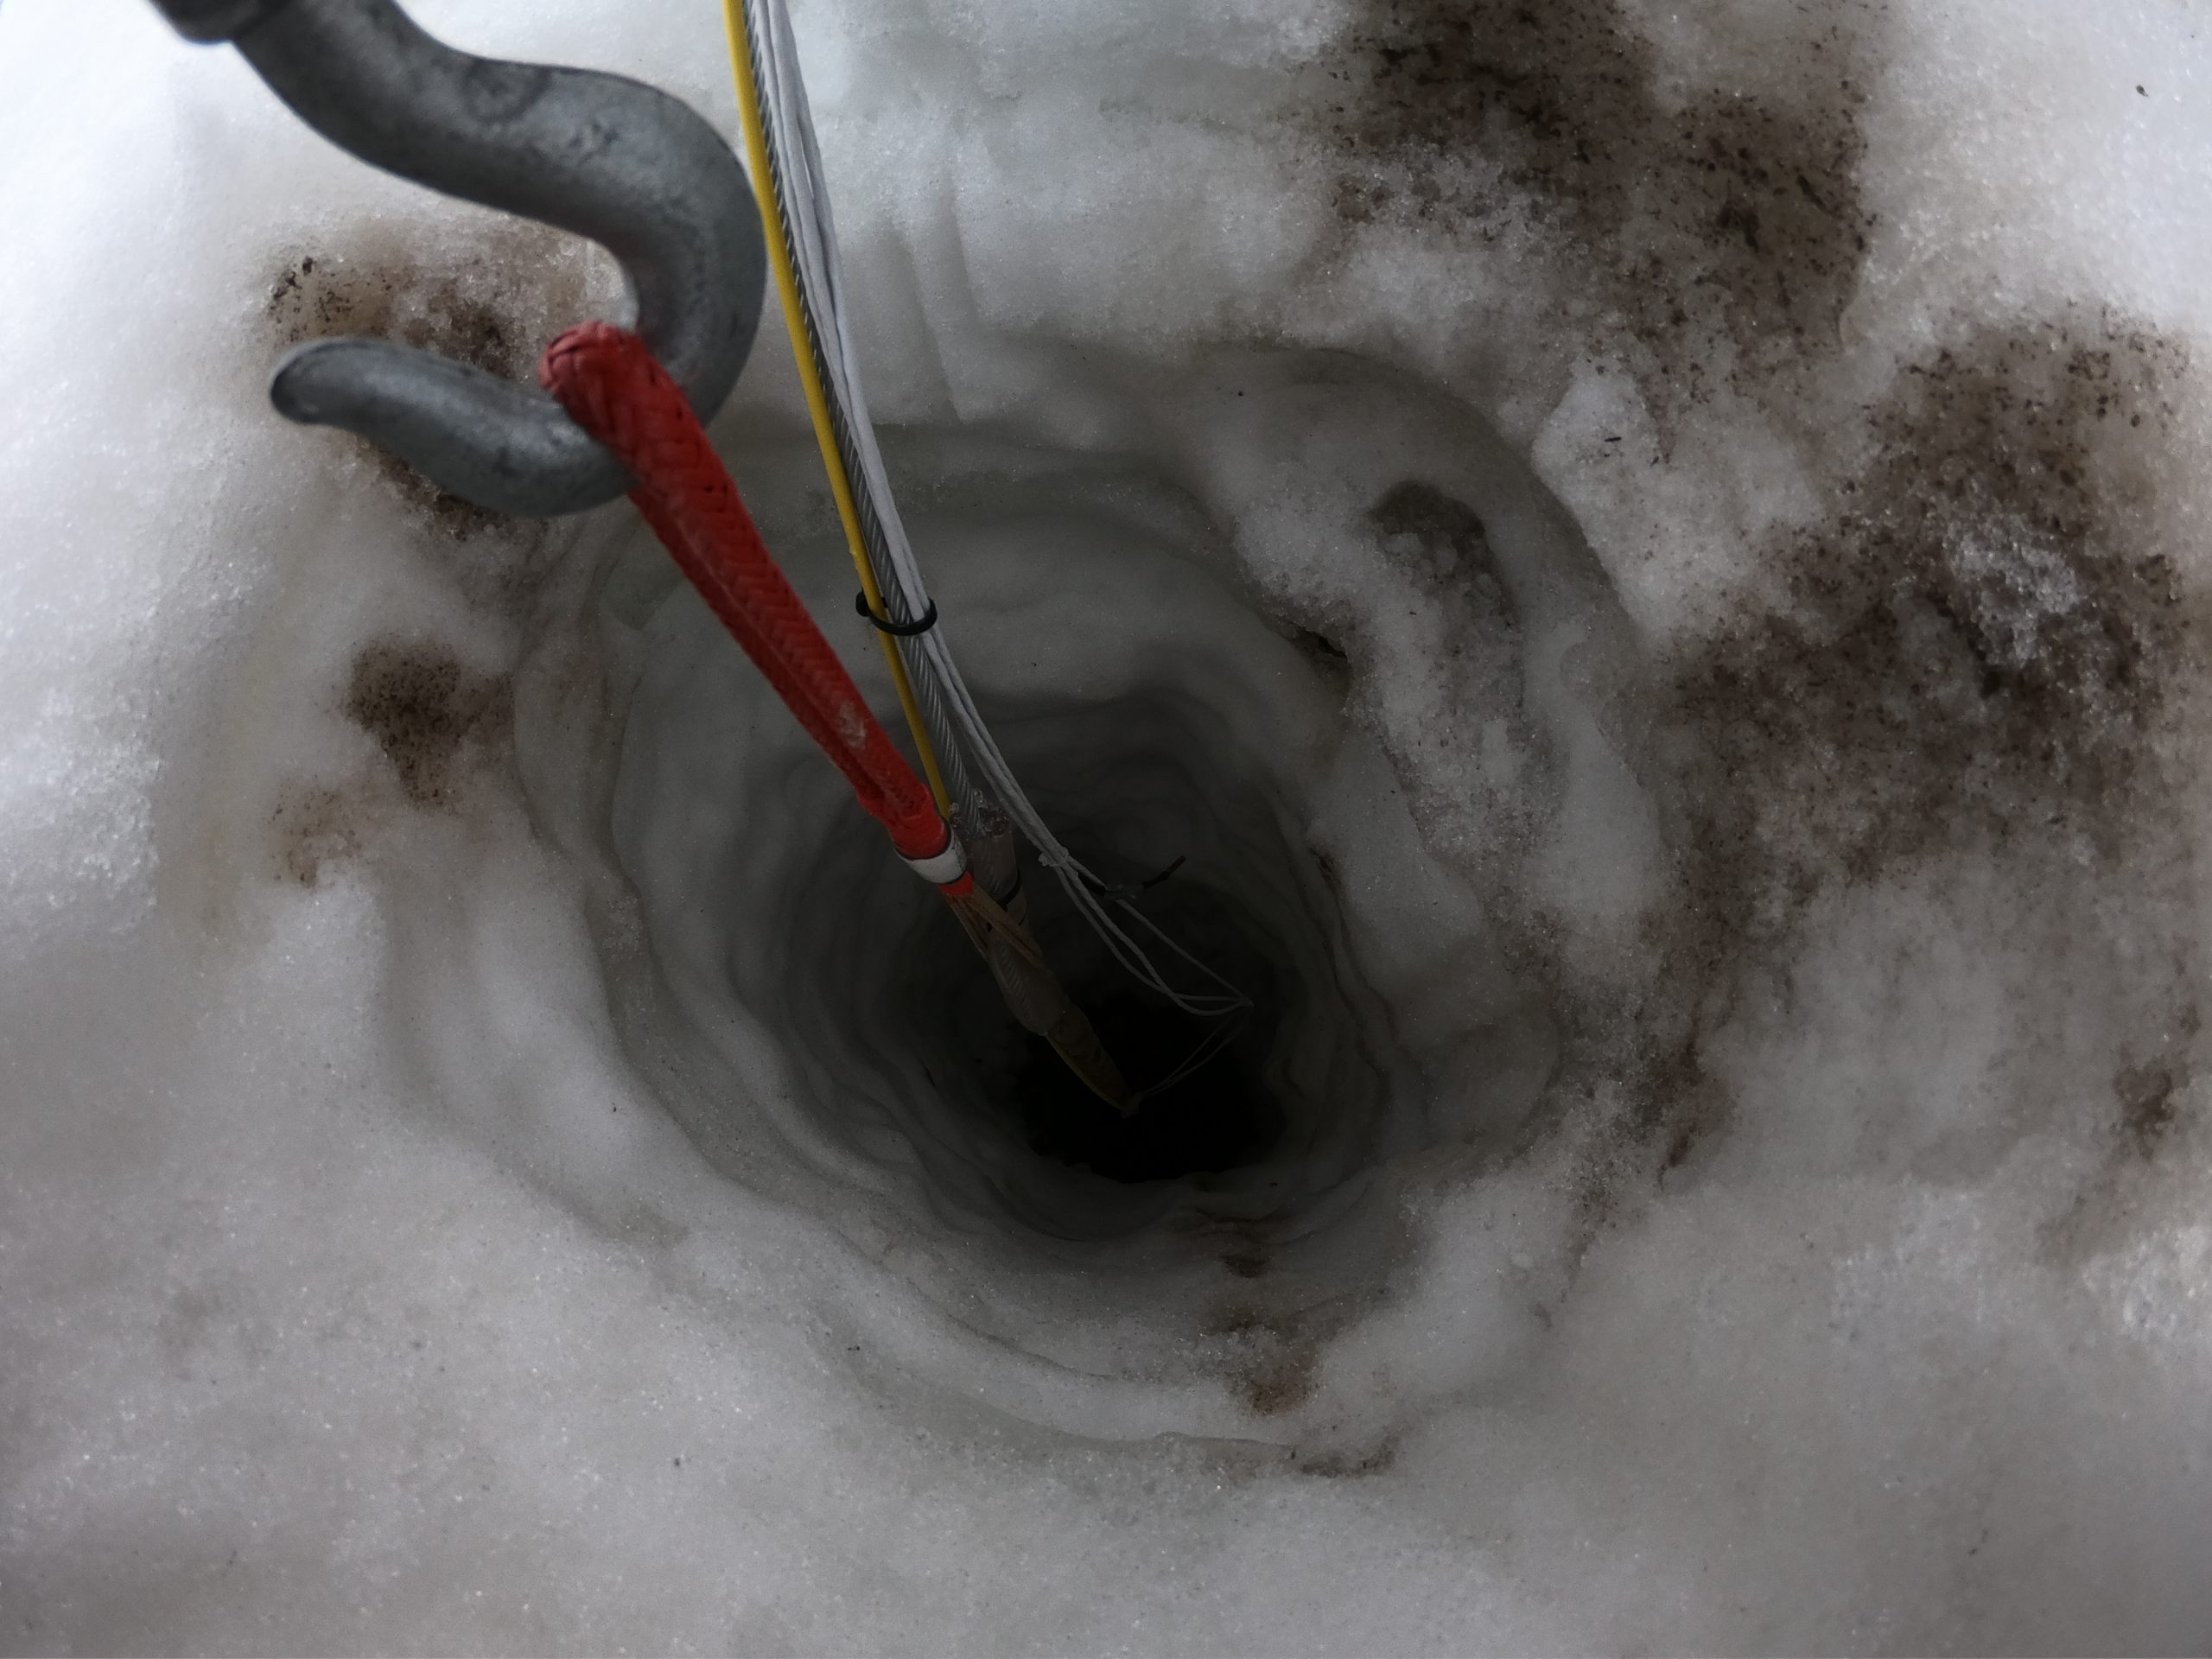 An eerie hole leads through 300 meters of ice, to a seafloor nearly half a mile below. A string of instruments was lowered through the hole and permanently frozen in, to monitor ocean currents, temperature, and melting on the underside of the ice shelf. Photograph by Douglas Fox